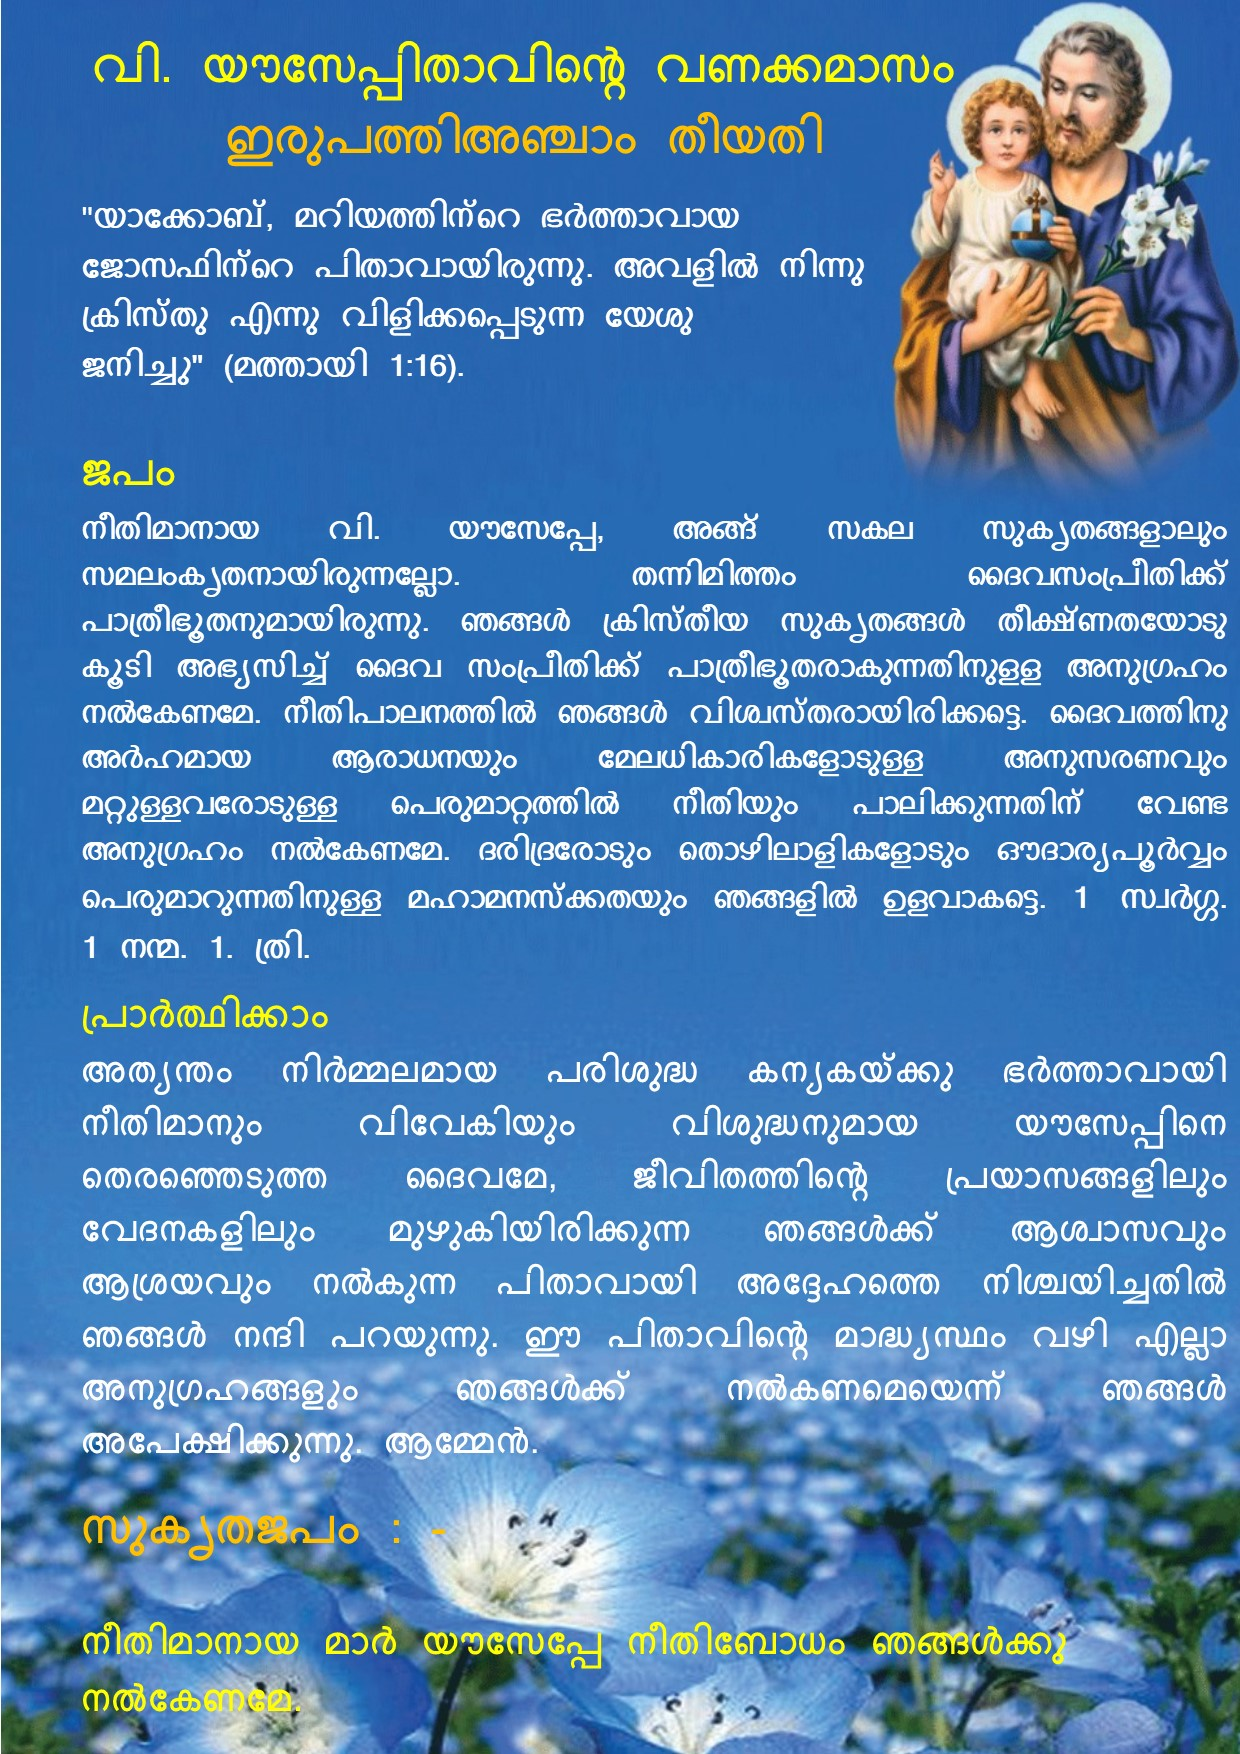 Vanakkamasam, St Joseph, March 25